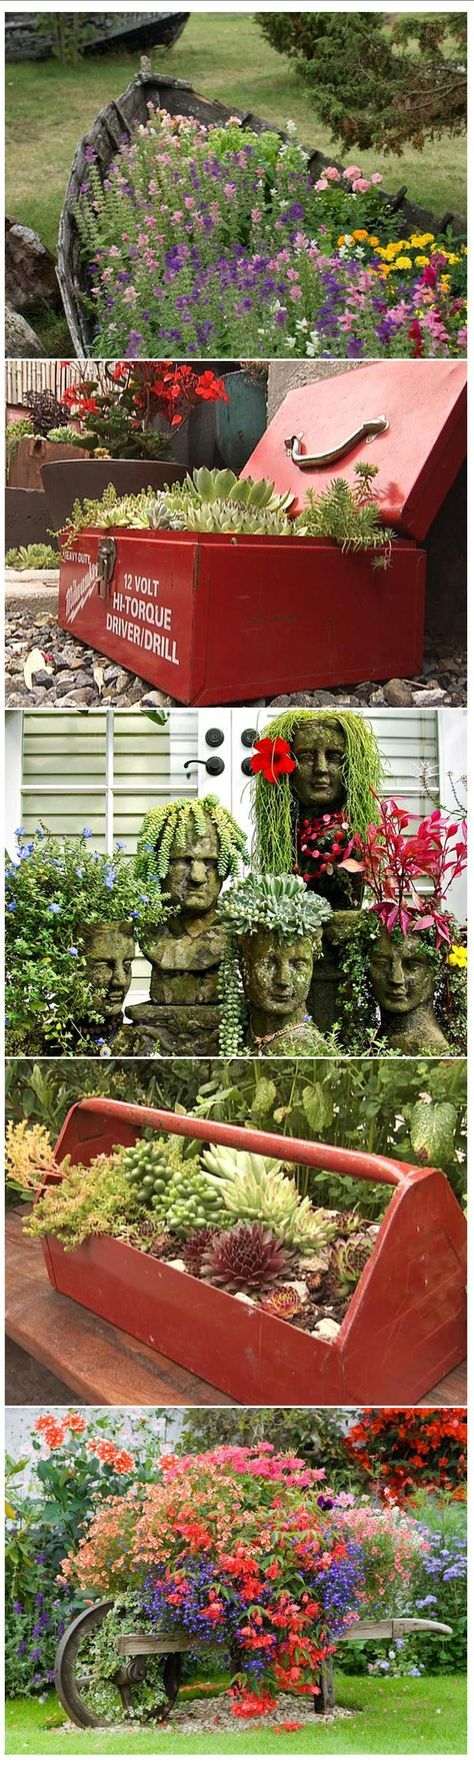 i♥Garden | ..upcycle 'Container Garden' ideas - old boat, tool boxes, facial pots, old wheelbarrow (ideal for succulent, herbs and seasonal flowers)